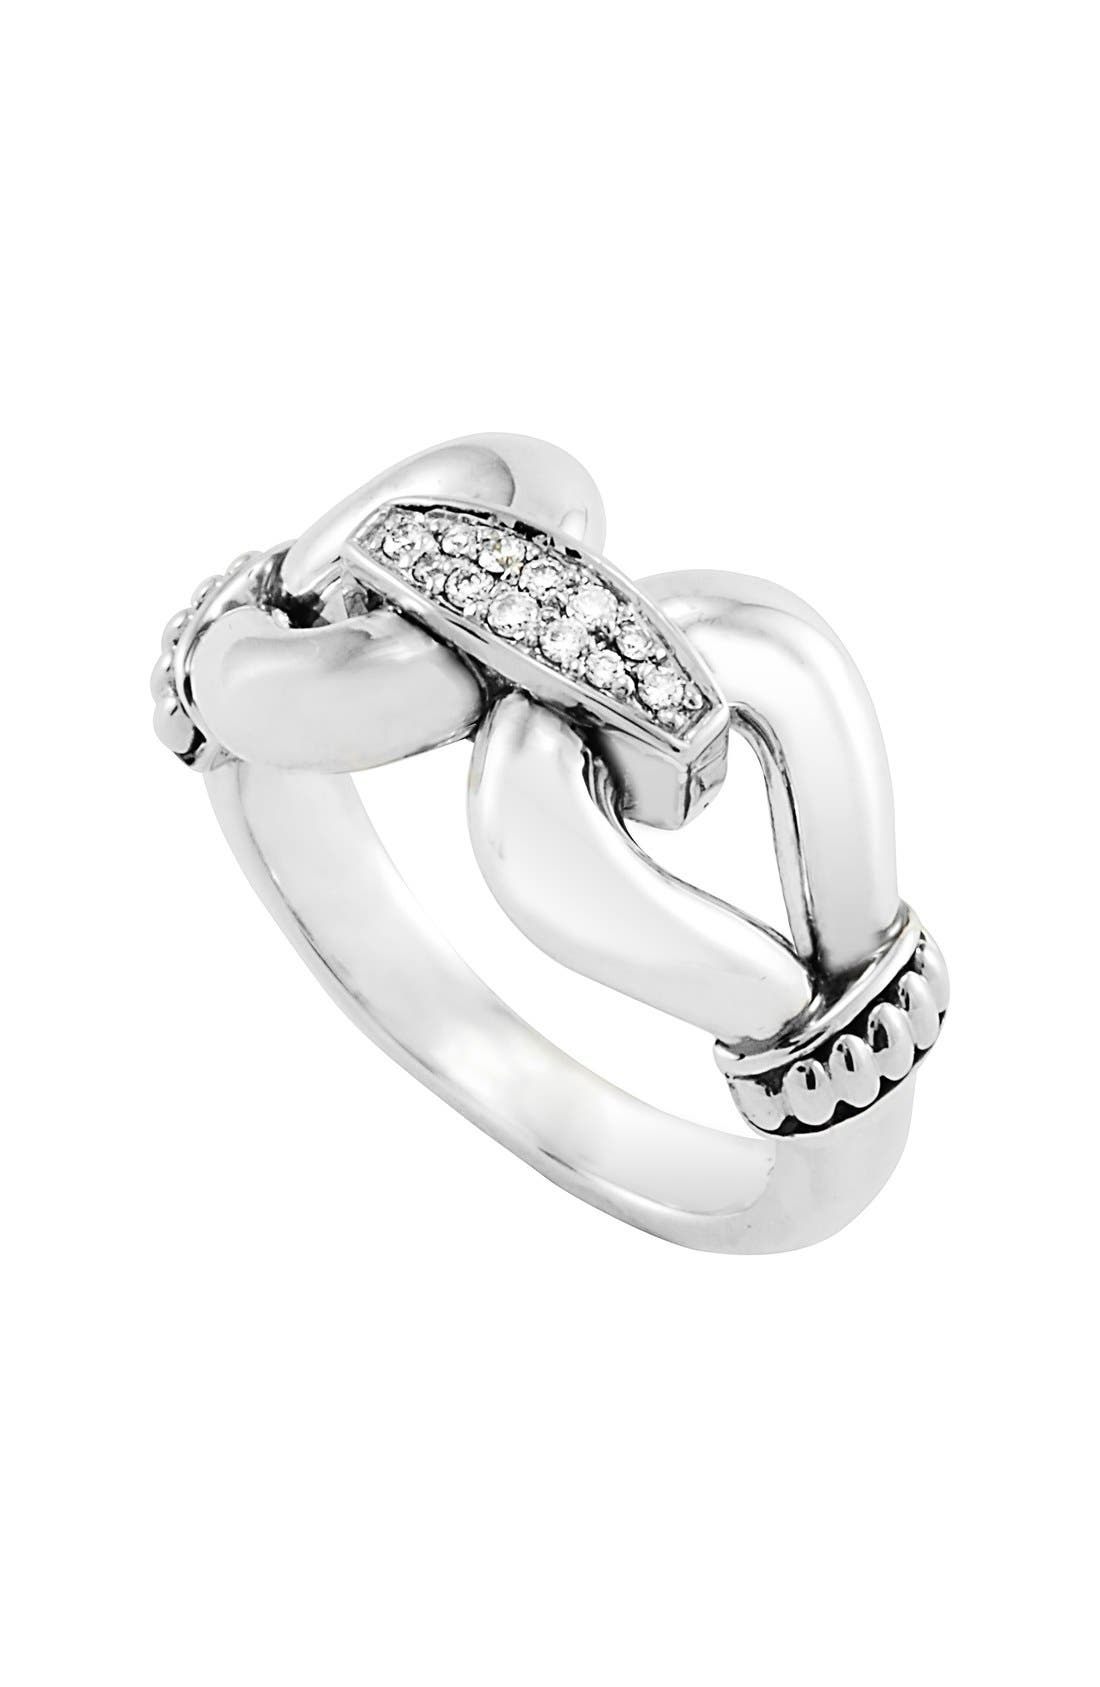 'Derby' Large Diamond Ring,                             Main thumbnail 1, color,                             040